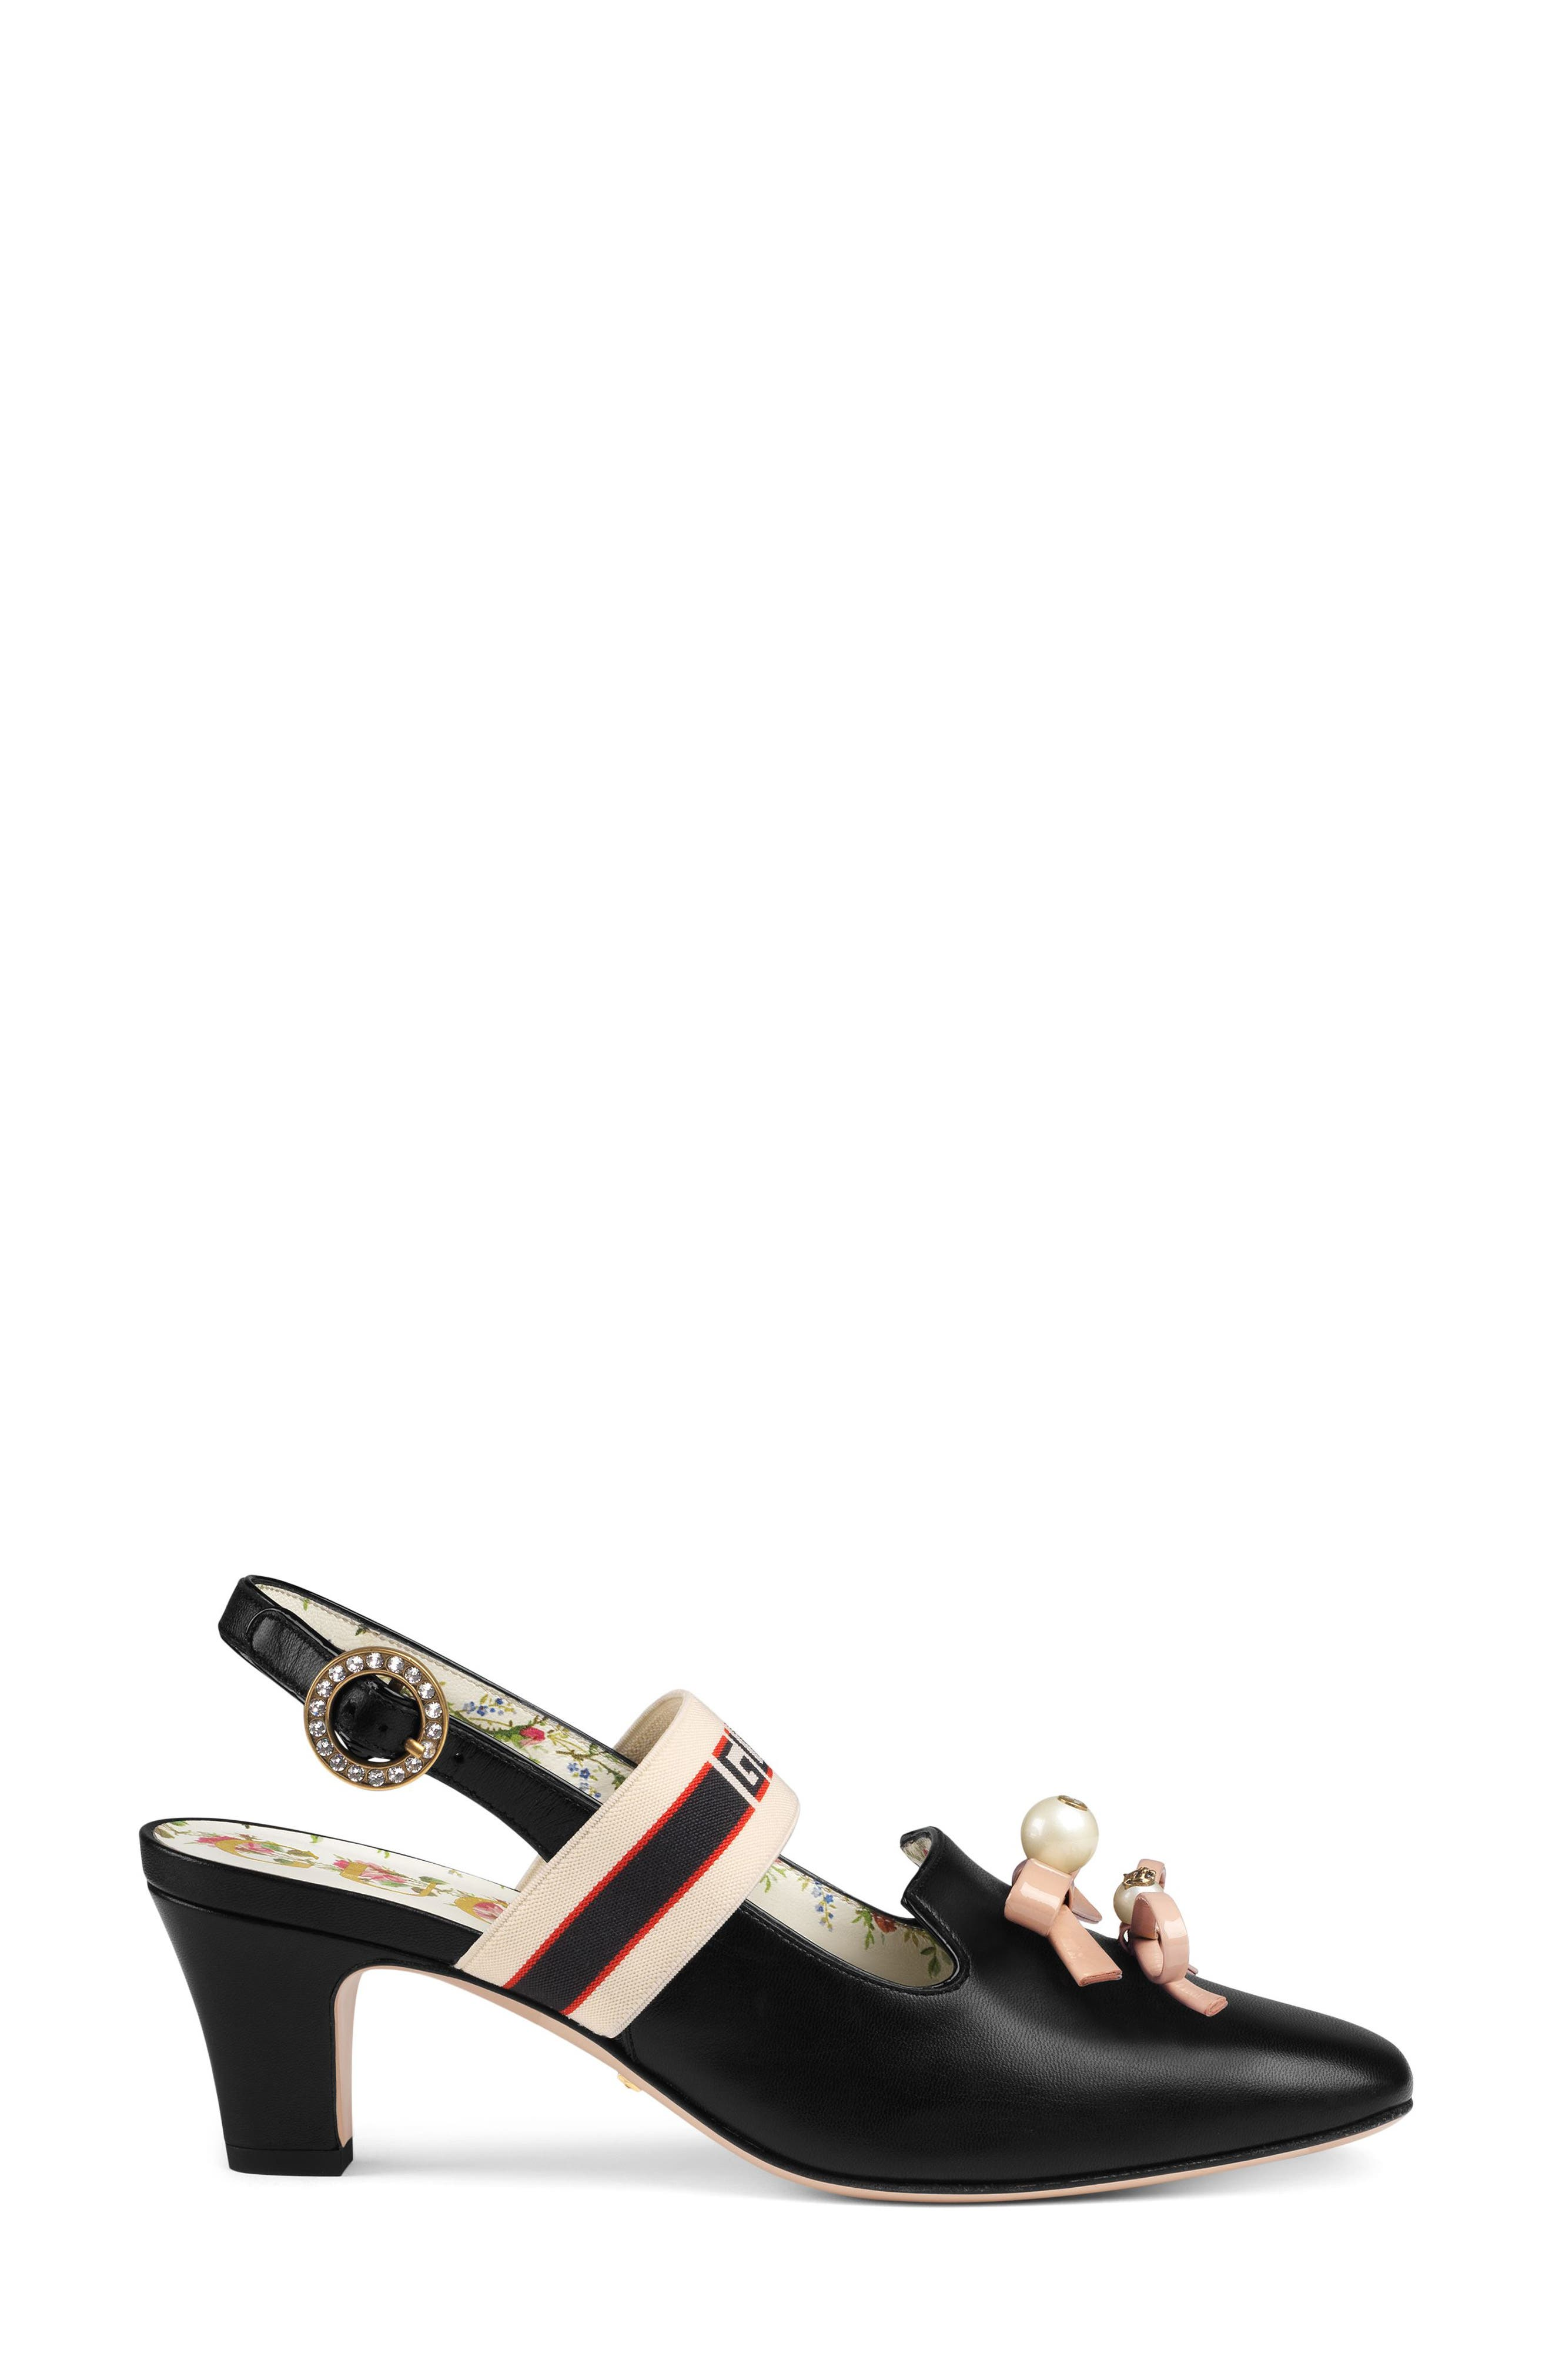 Logo Strap Slingback Pump,                             Alternate thumbnail 2, color,                             BLACK